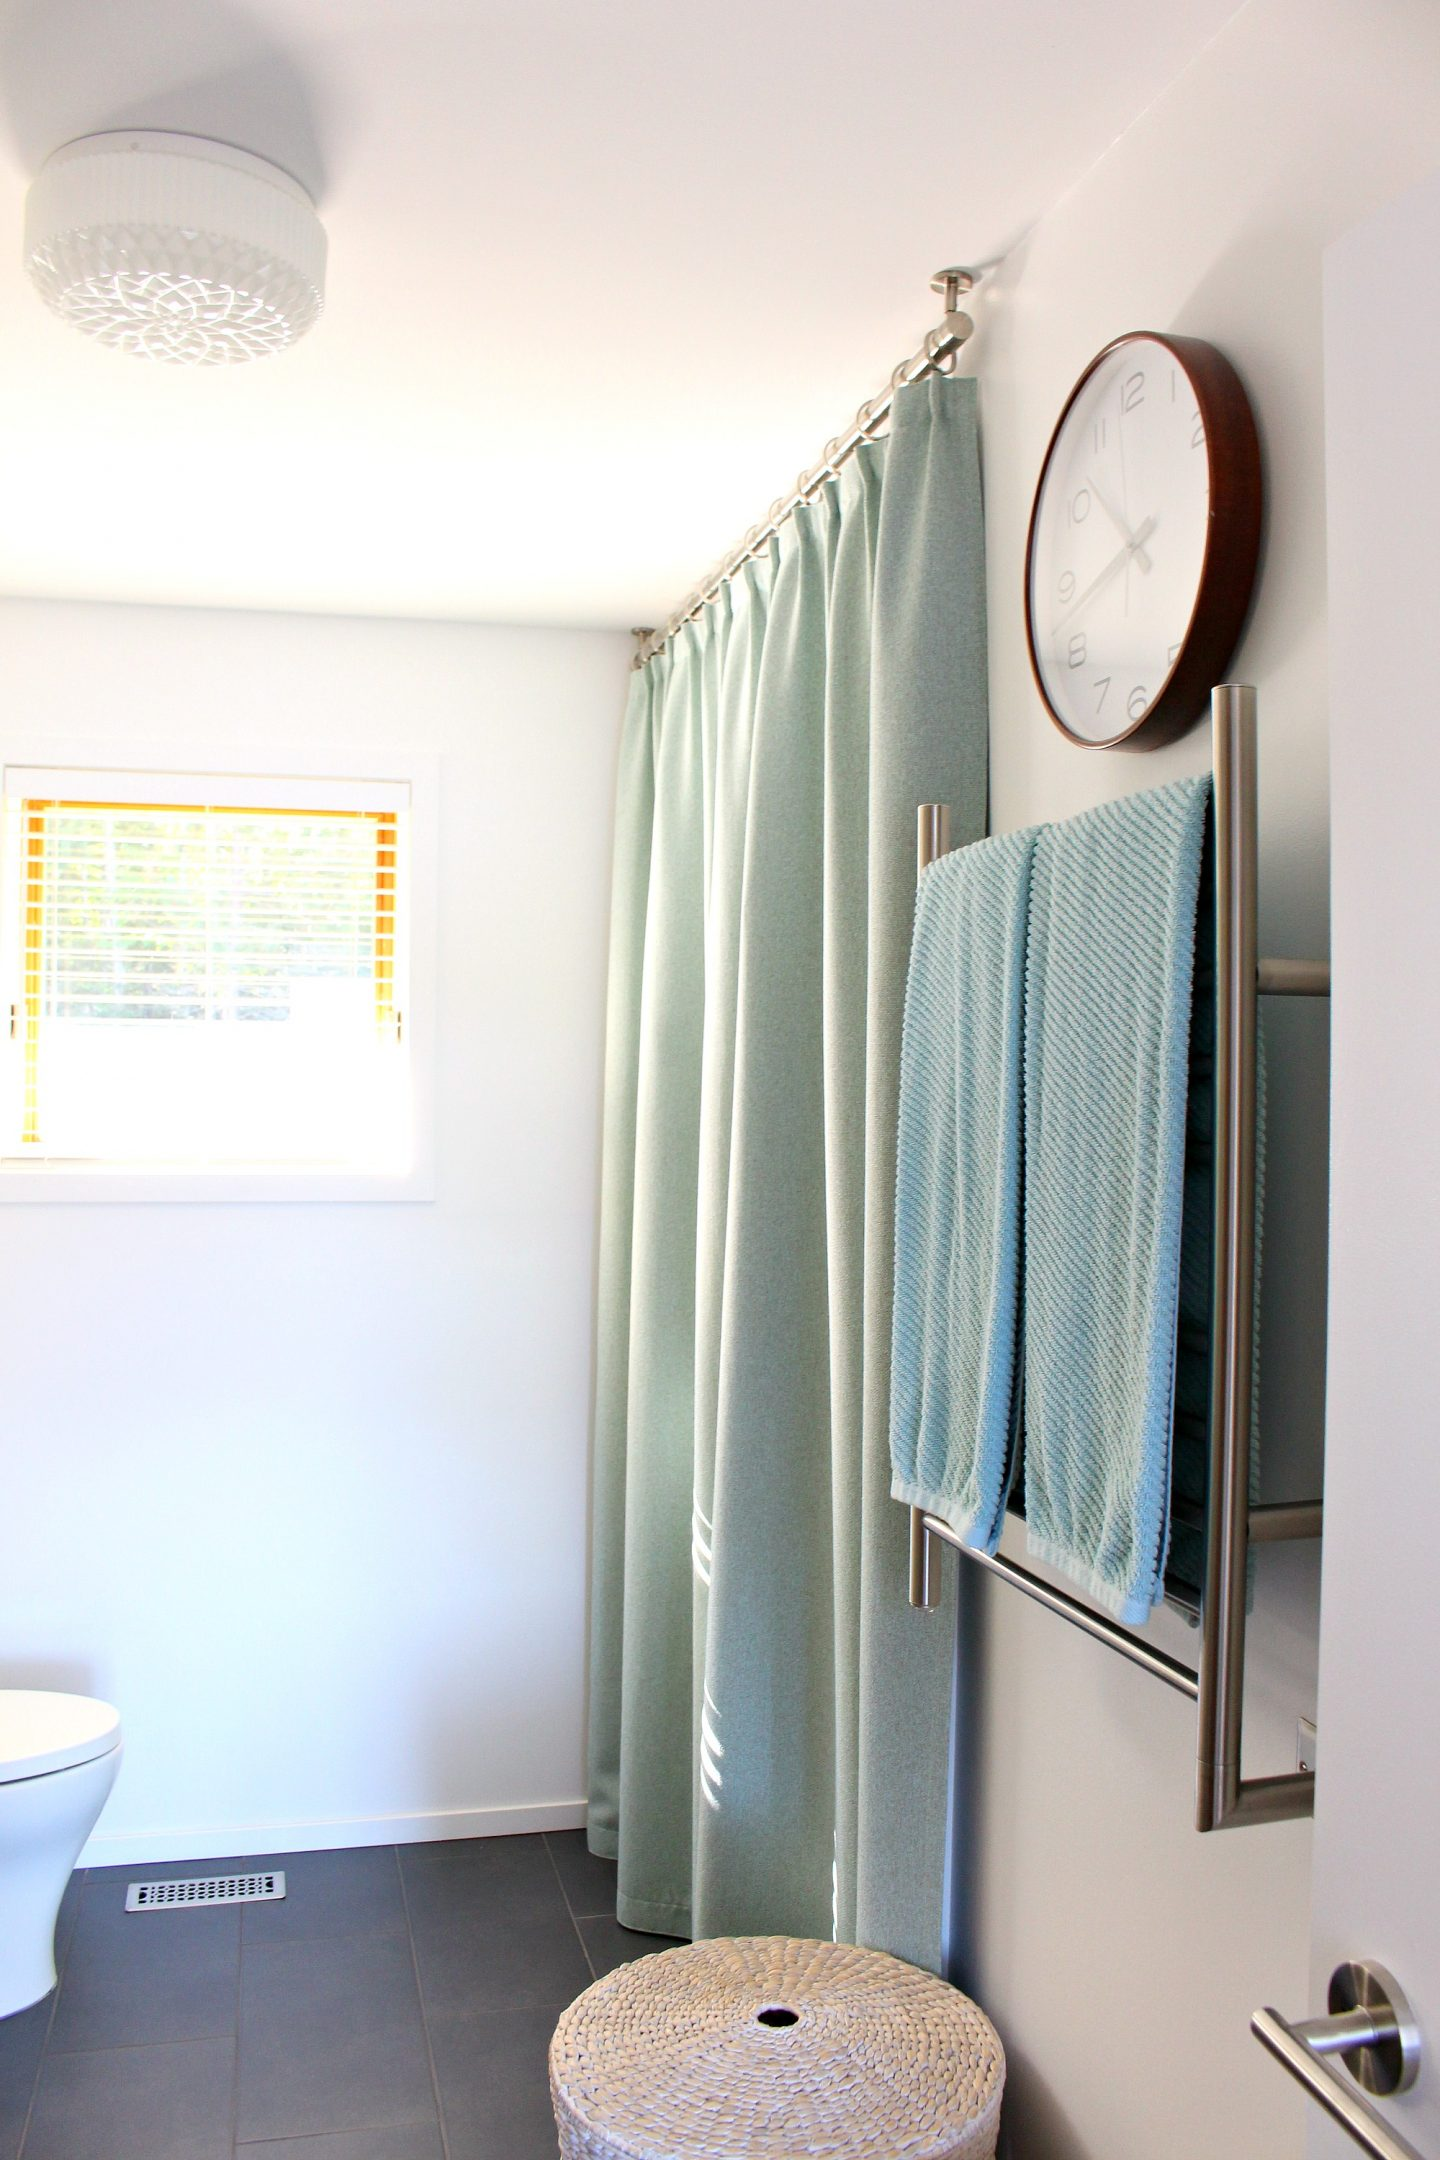 ceiling mounted shower curtain rod